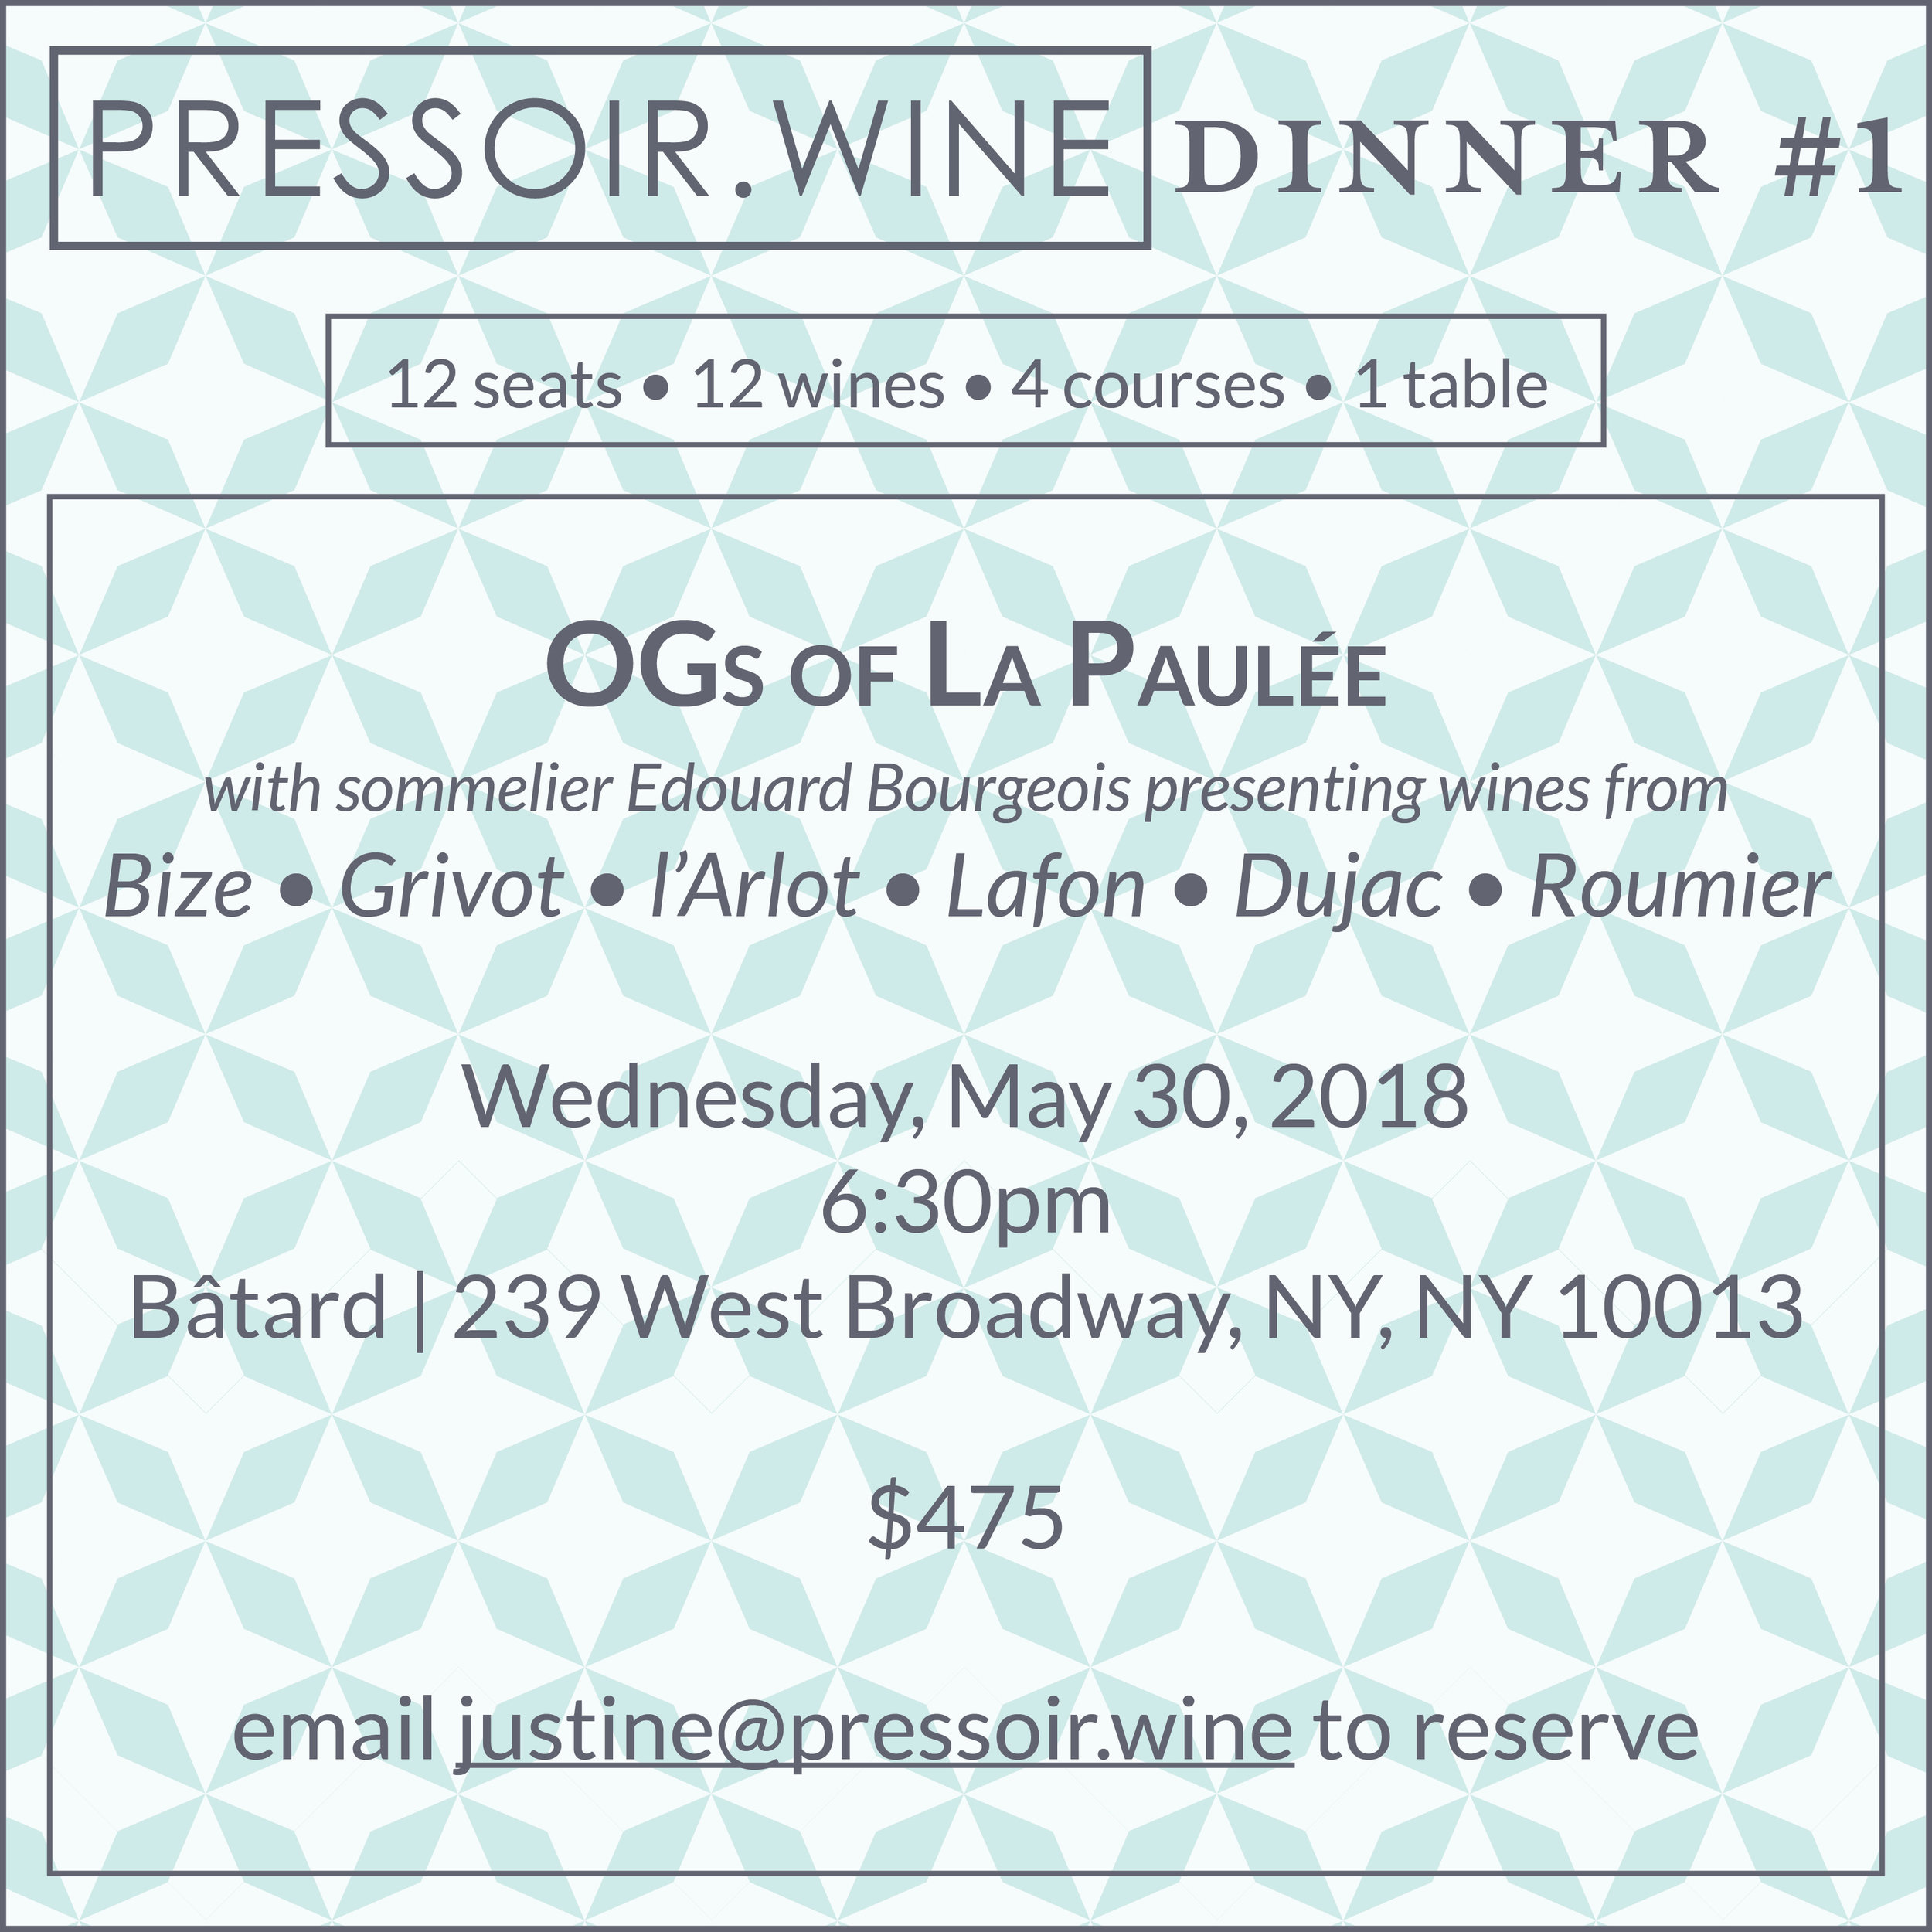 Pressoir Wine Dinner #1 OG.jpg